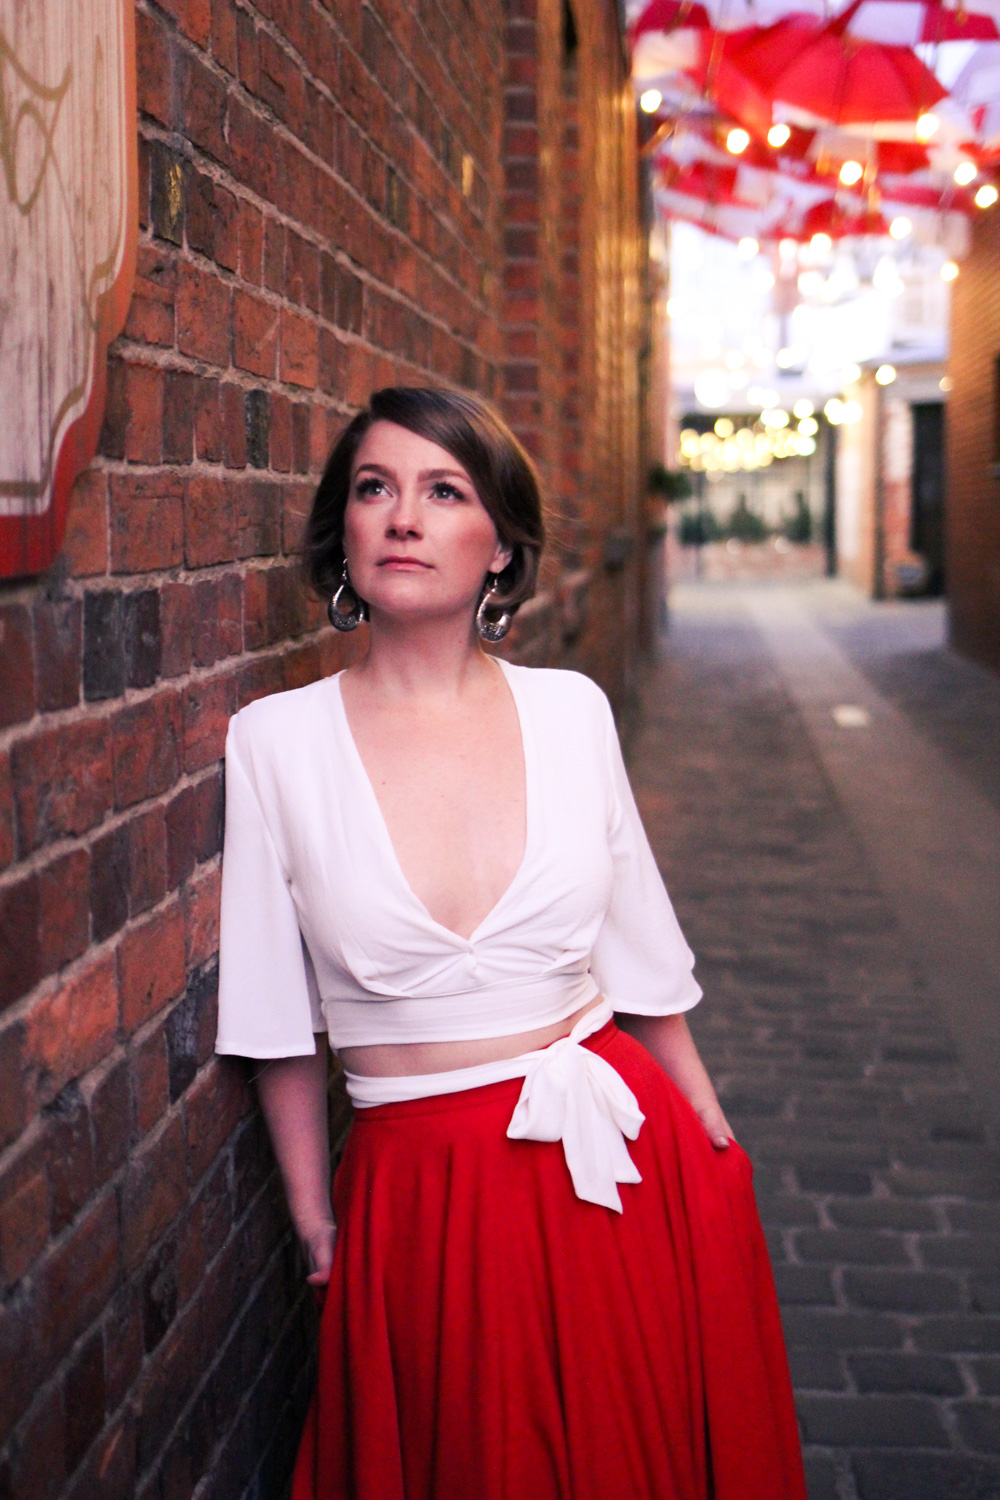 @findingfemme wears red maxi circle skirt from Mokkafiveoclock and white top at Hop Temple in Ballarat.